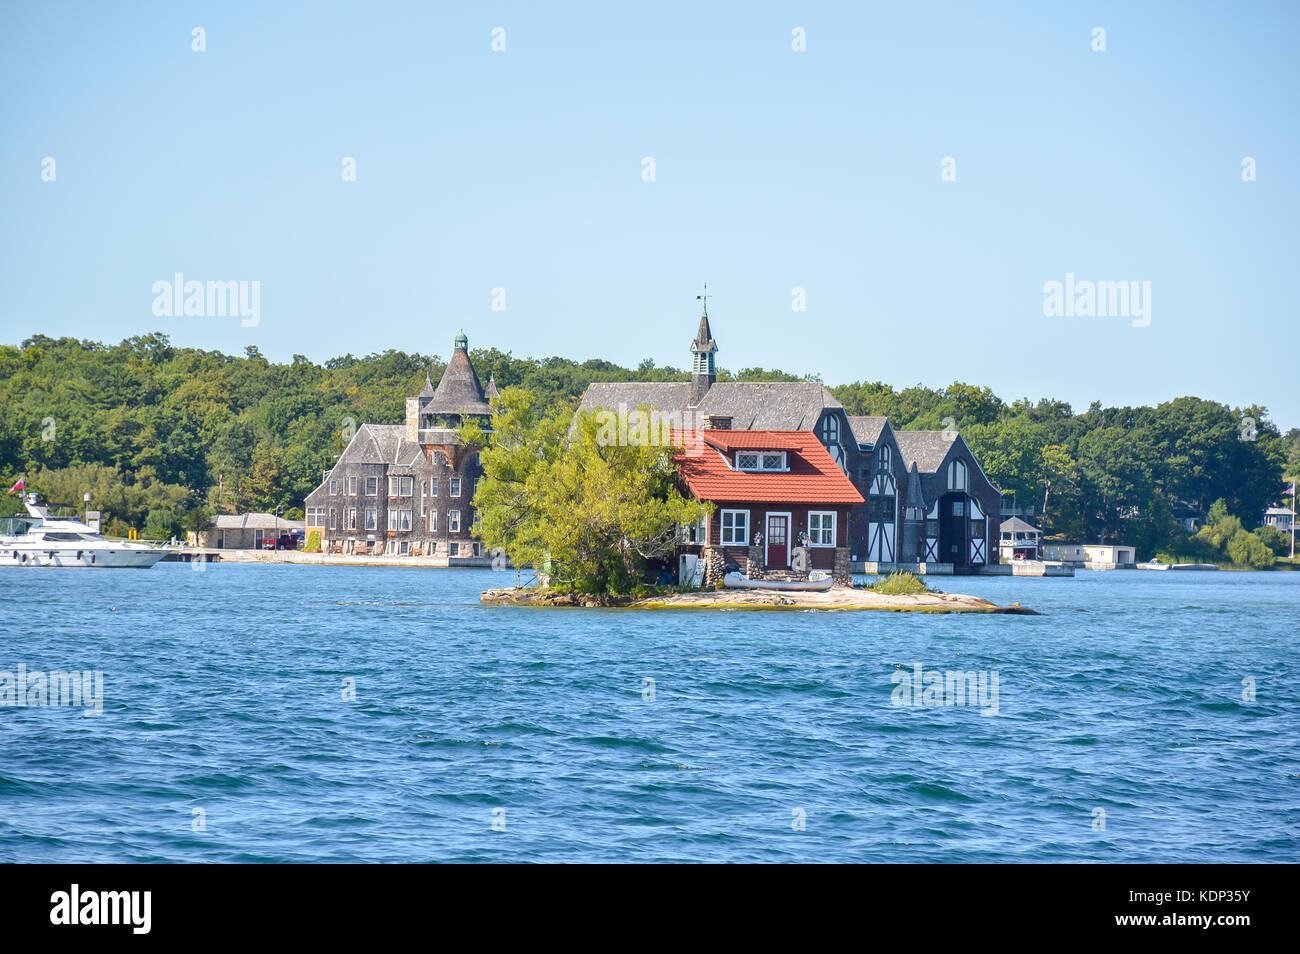 the just room enough island 1000 islands and kingston in ontario stock photo 163369303 alamy. Black Bedroom Furniture Sets. Home Design Ideas